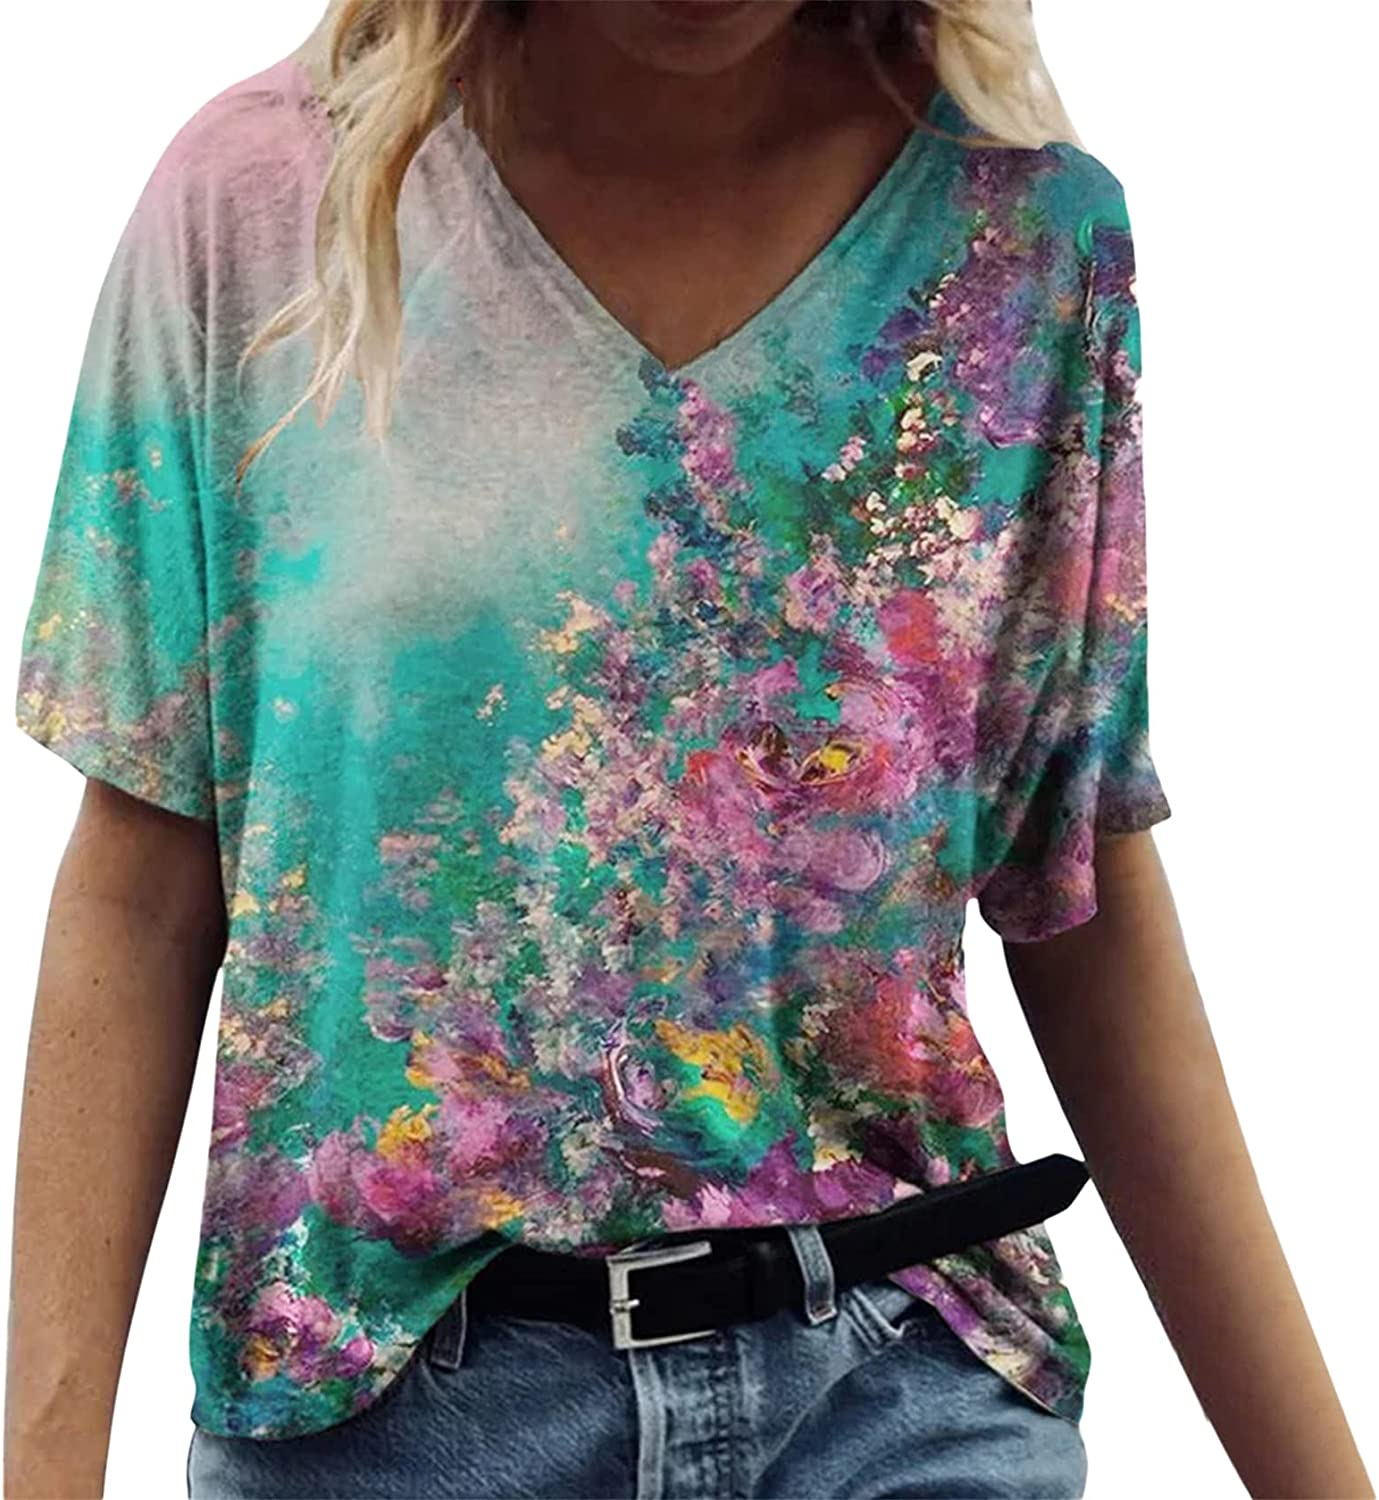 Andongnywell Women's Printed Short Sleeve Loose Casual V-Neck Floral Print T-Shirt Tops Tunic Blouses